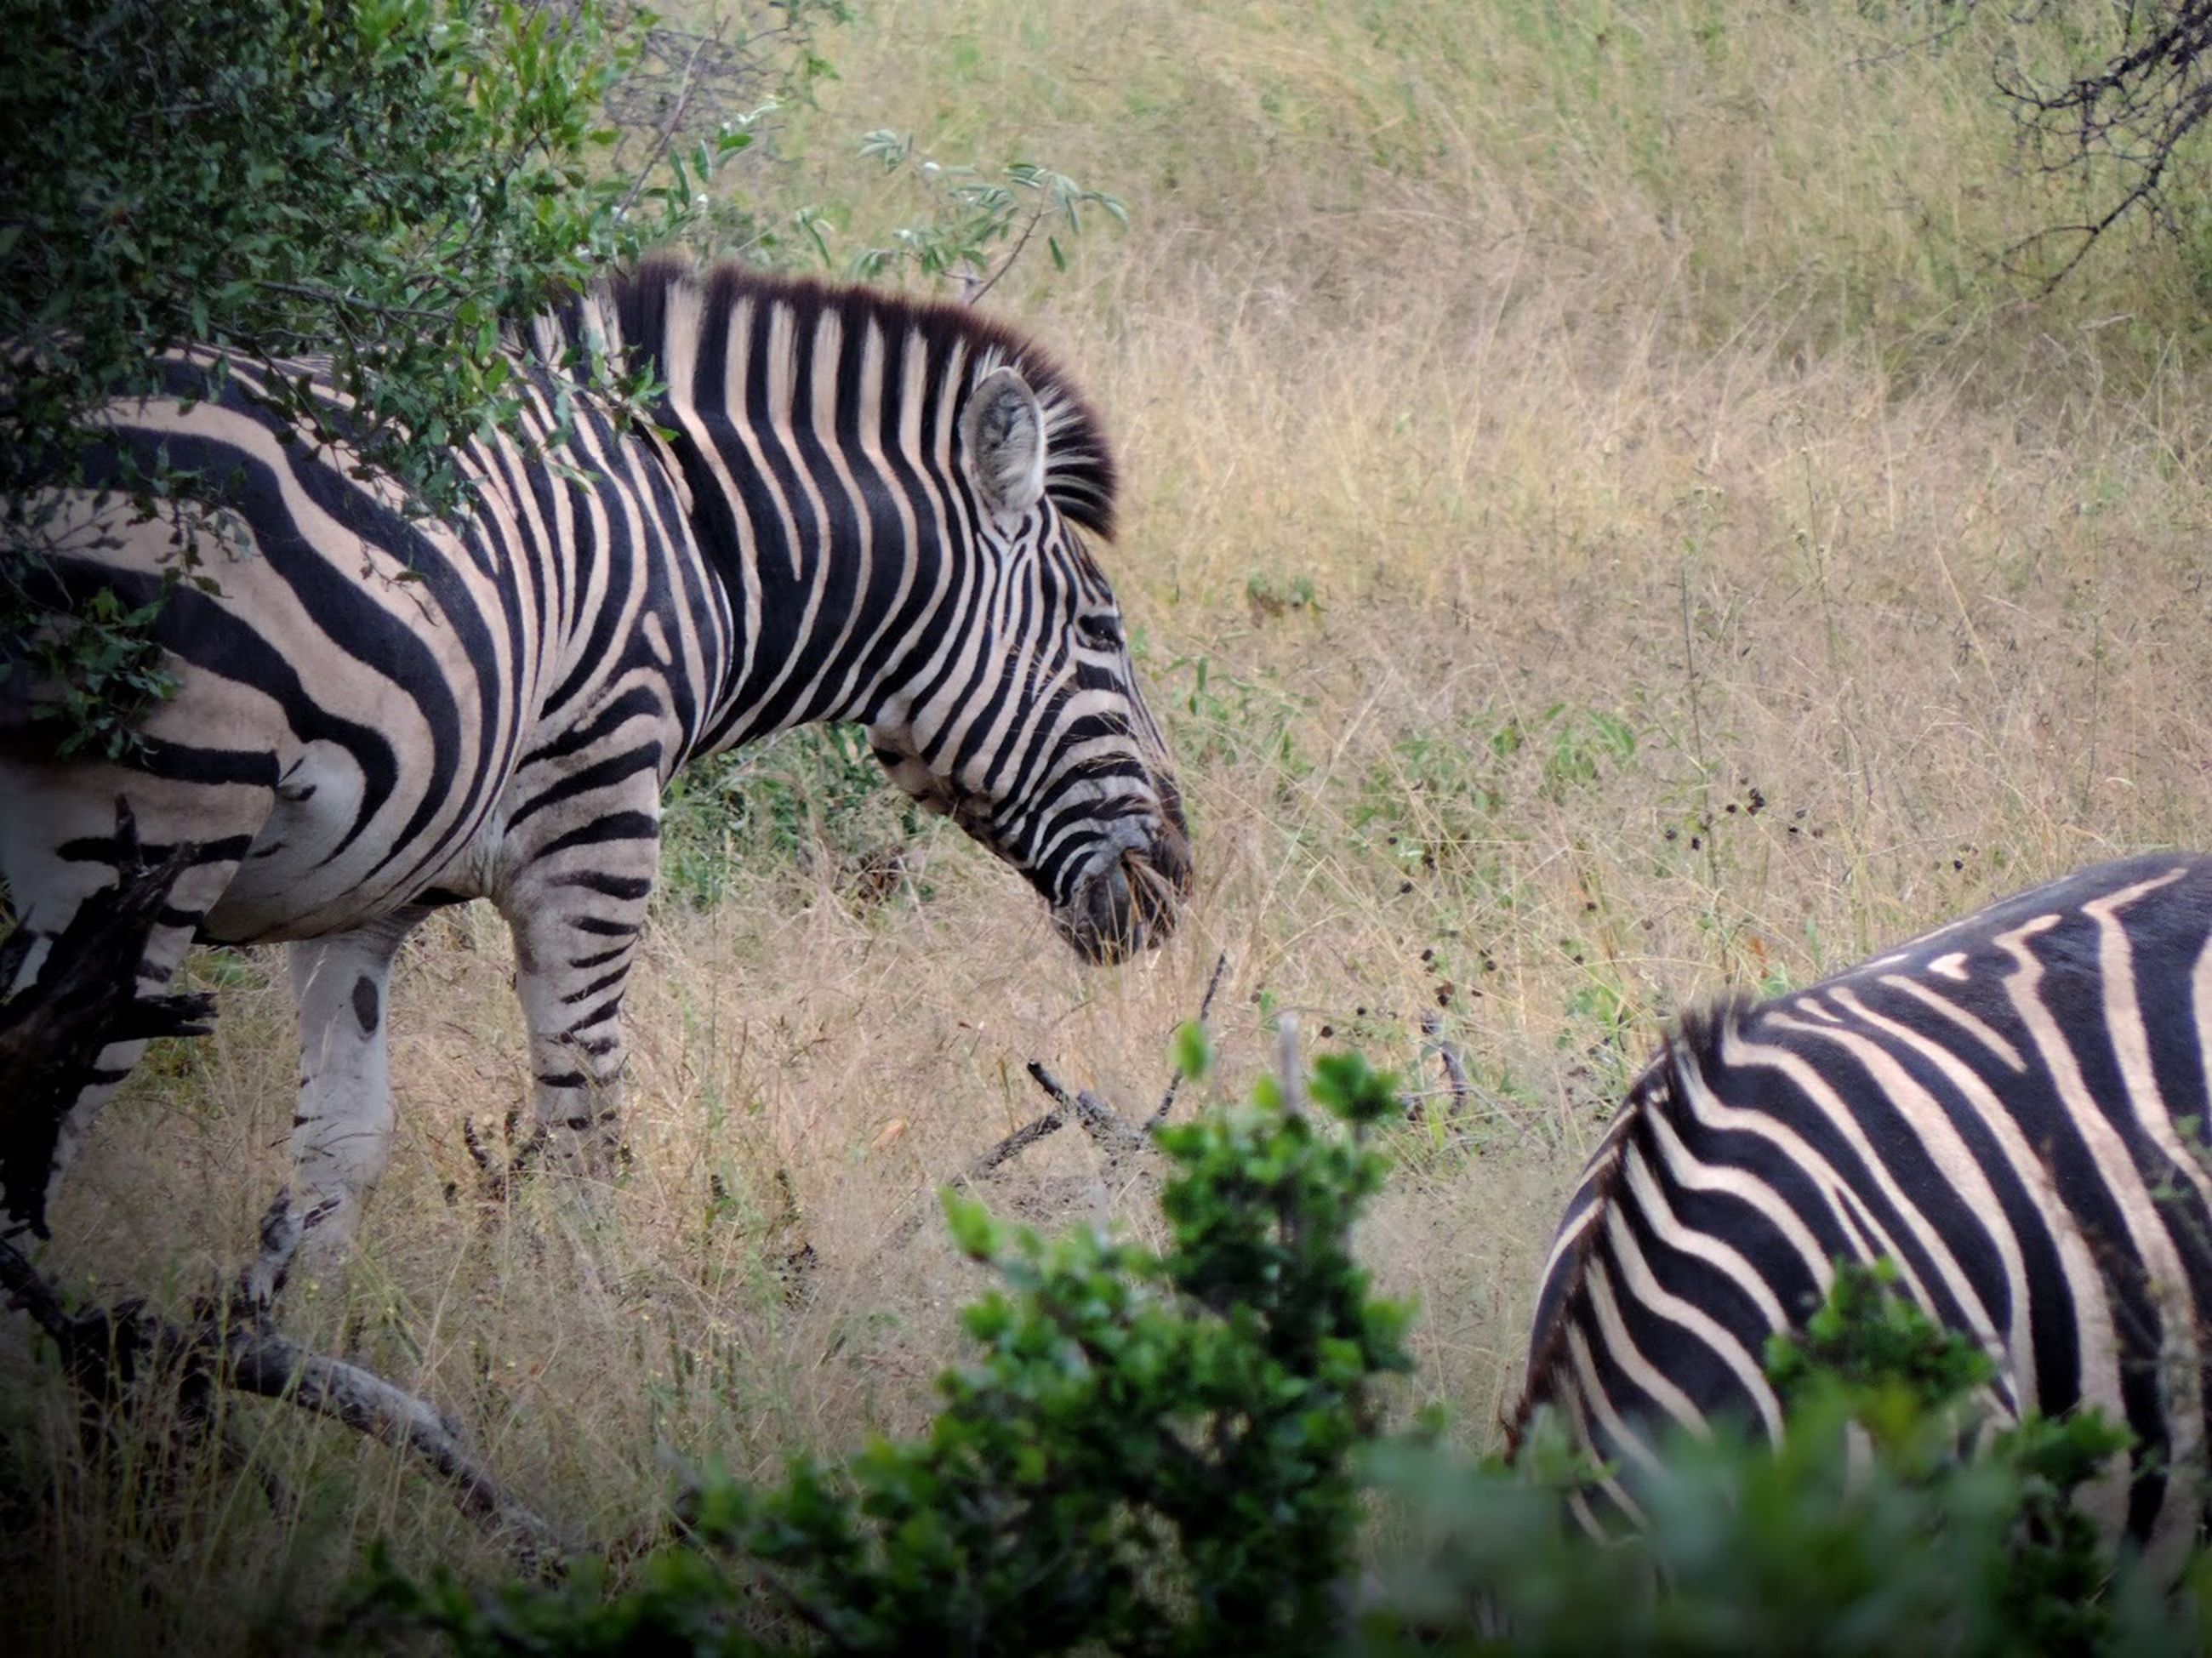 striped, zebra, animal, animal themes, animal wildlife, mammal, animals in the wild, plant, safari, nature, vertebrate, no people, natural pattern, one animal, tree, animal markings, domestic animals, land, outdoors, herbivorous